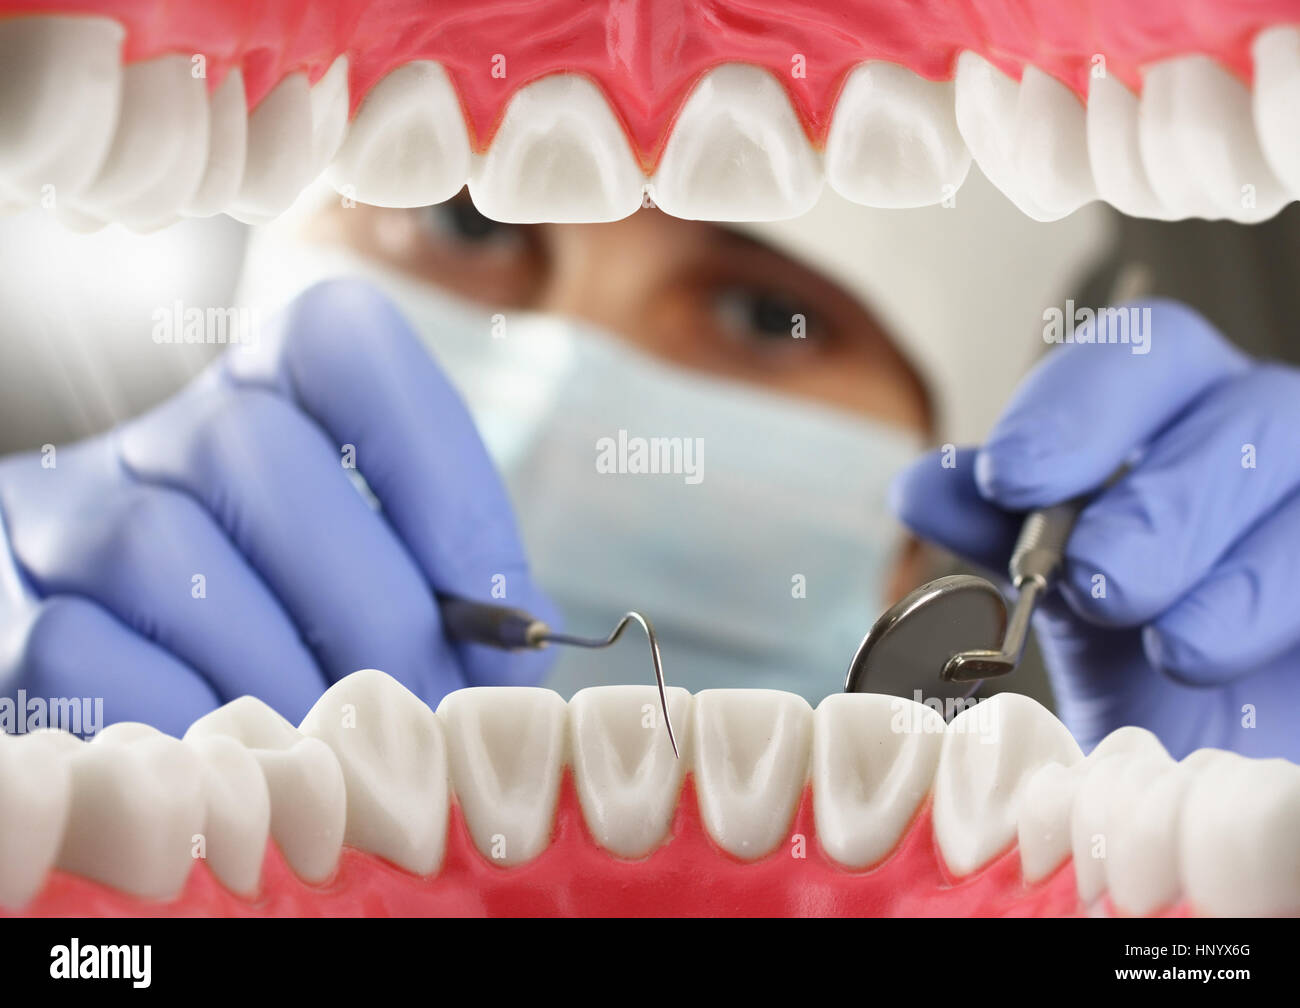 dentist checkup teeth, Inside mouth view - Stock Image